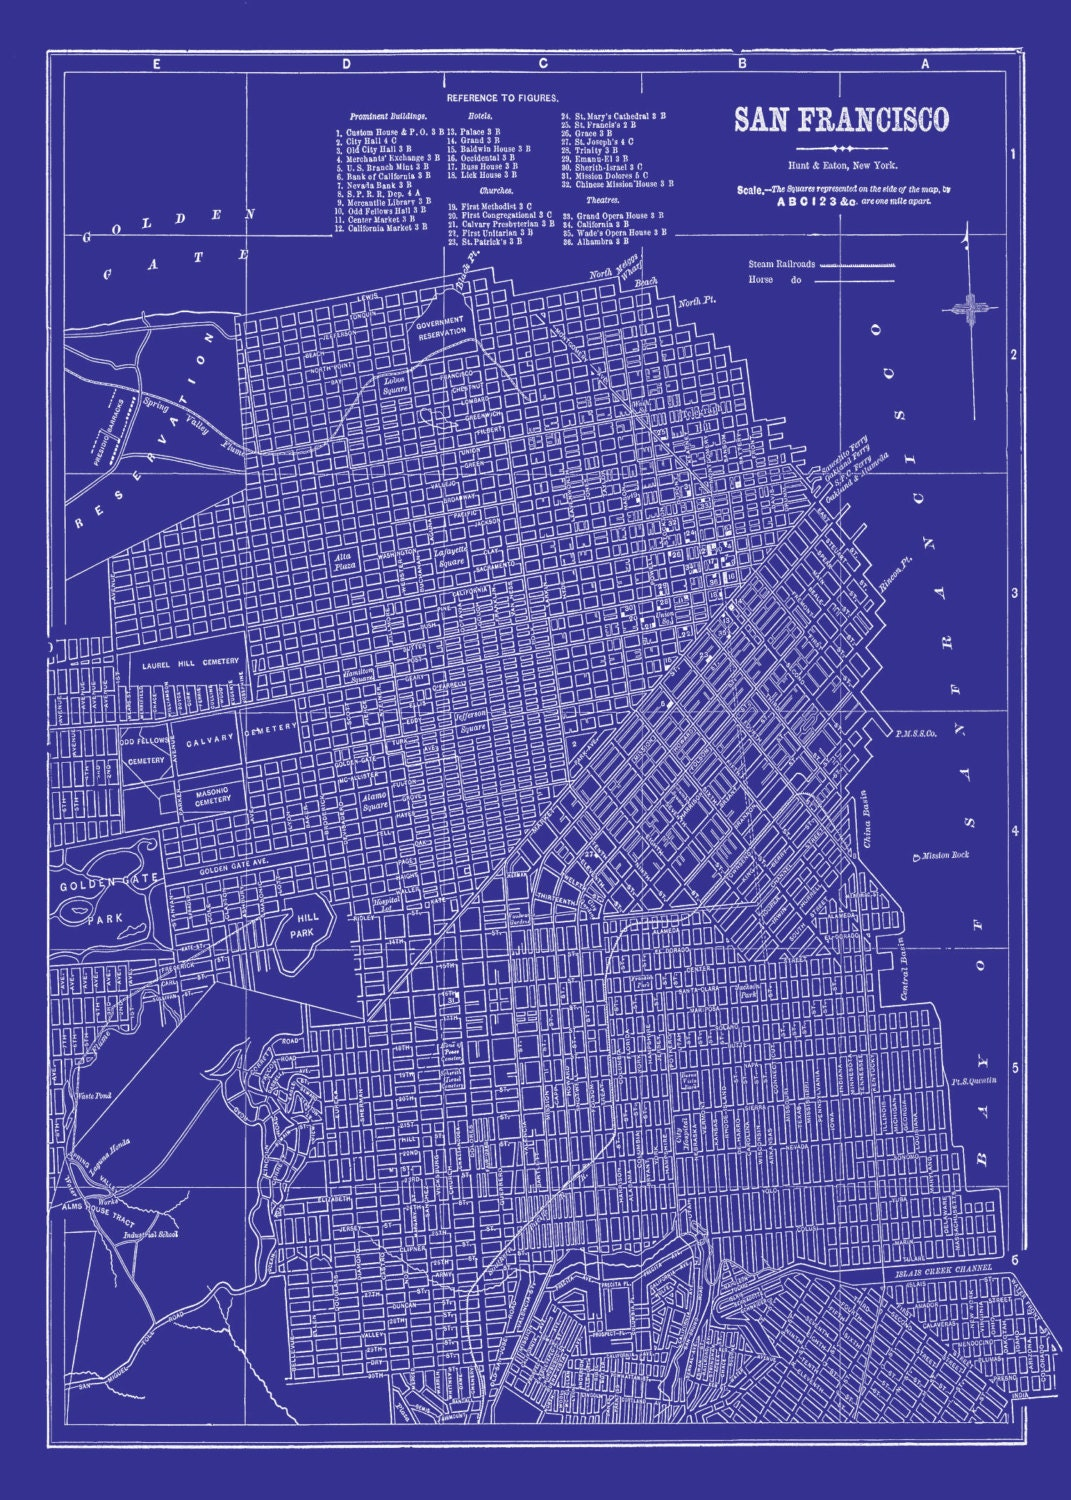 Francisco map street map vintage blueprint print poster zoom malvernweather Images